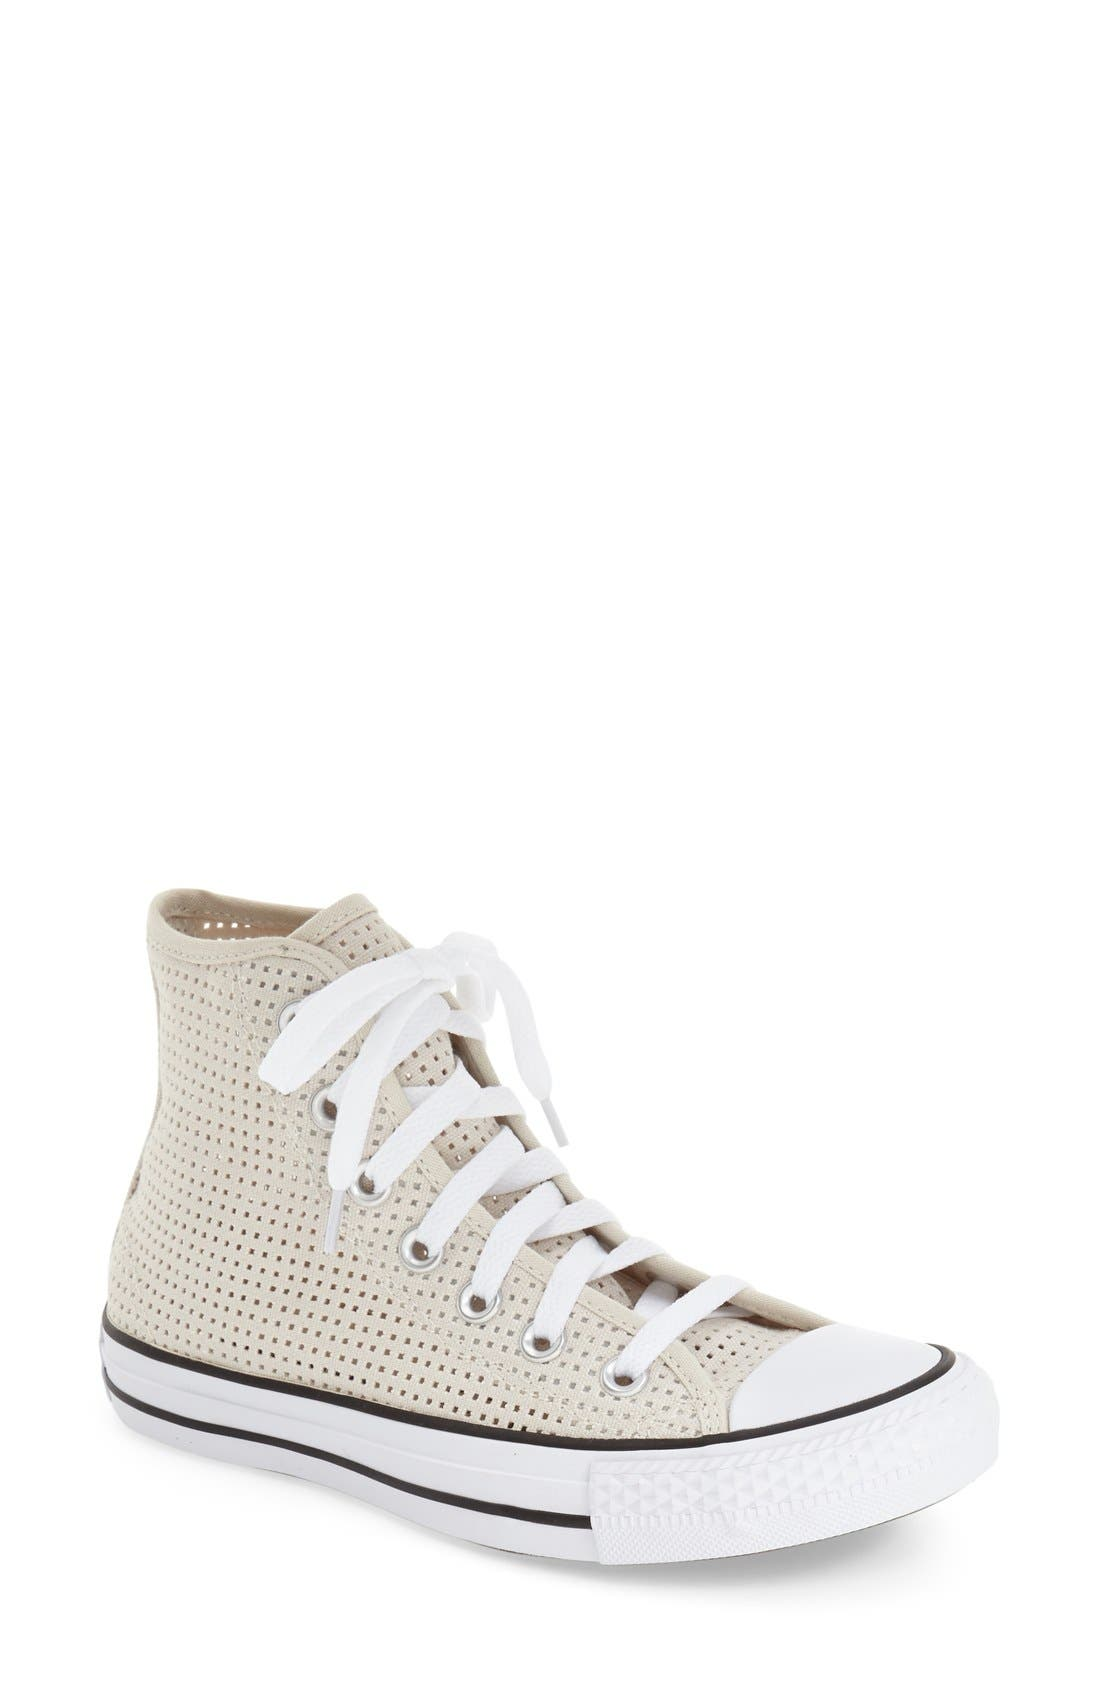 Main Image - Converse Chuck Taylor® All Star® Perforated Canvas High Top Sneaker (Women)